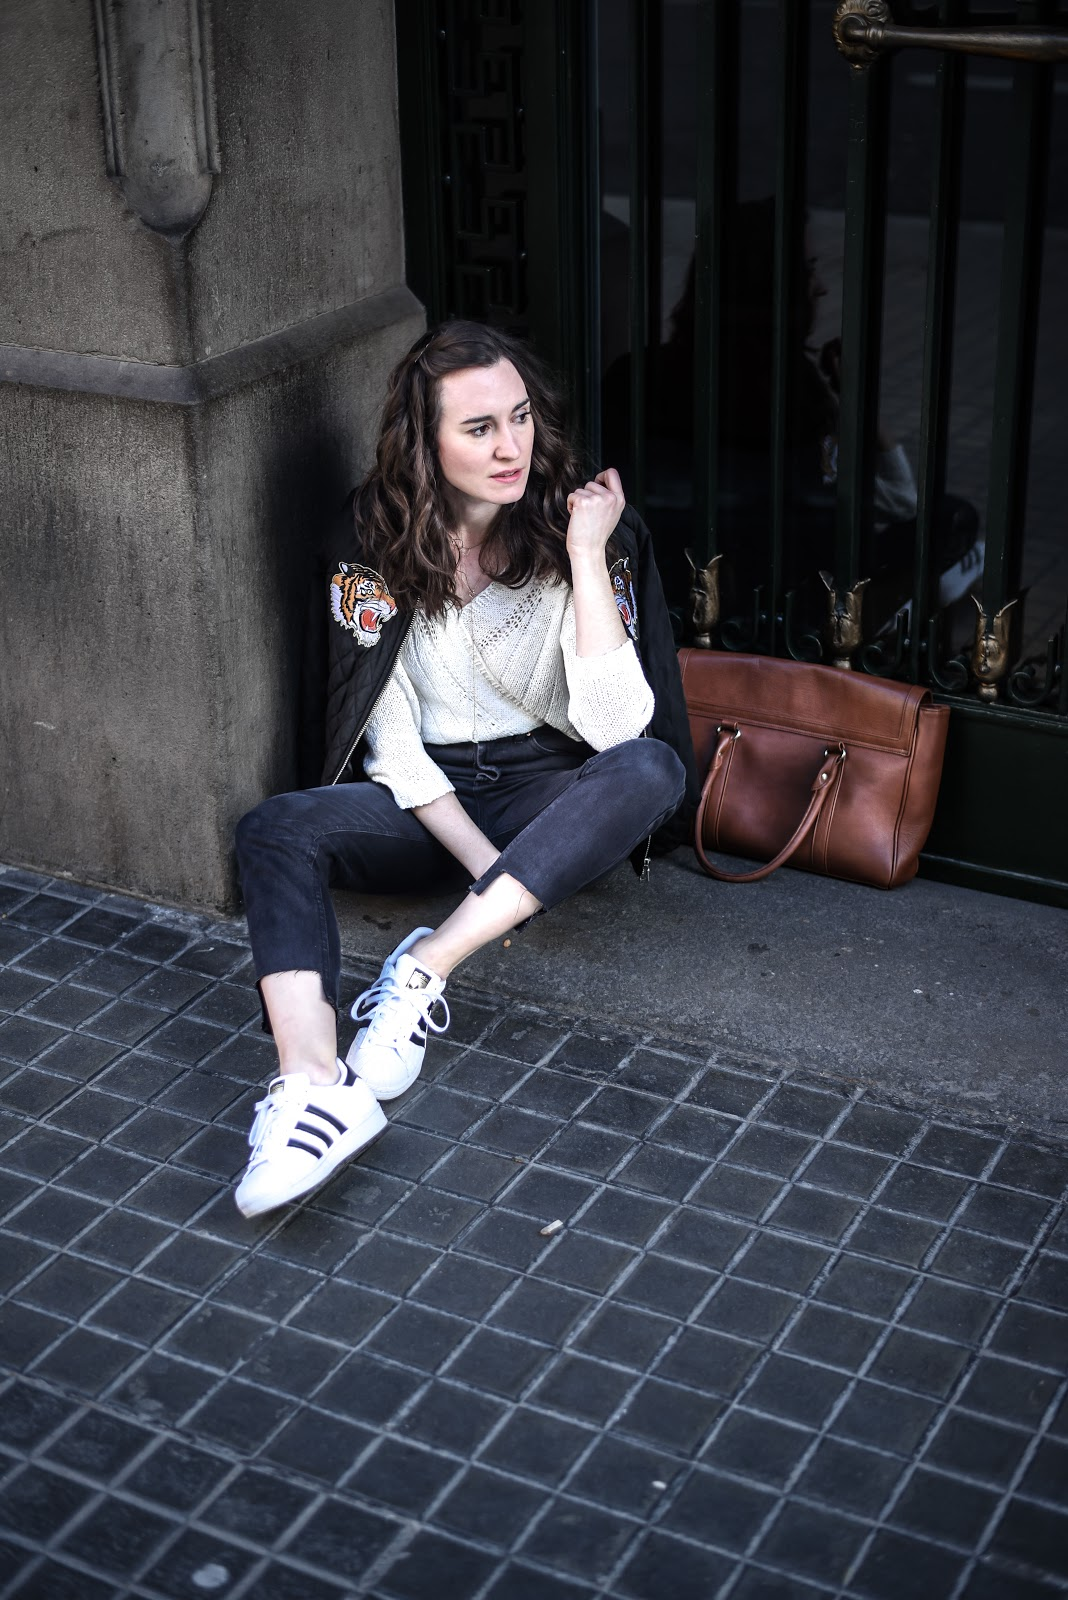 sneakers_street_style_adidas_superstar_look